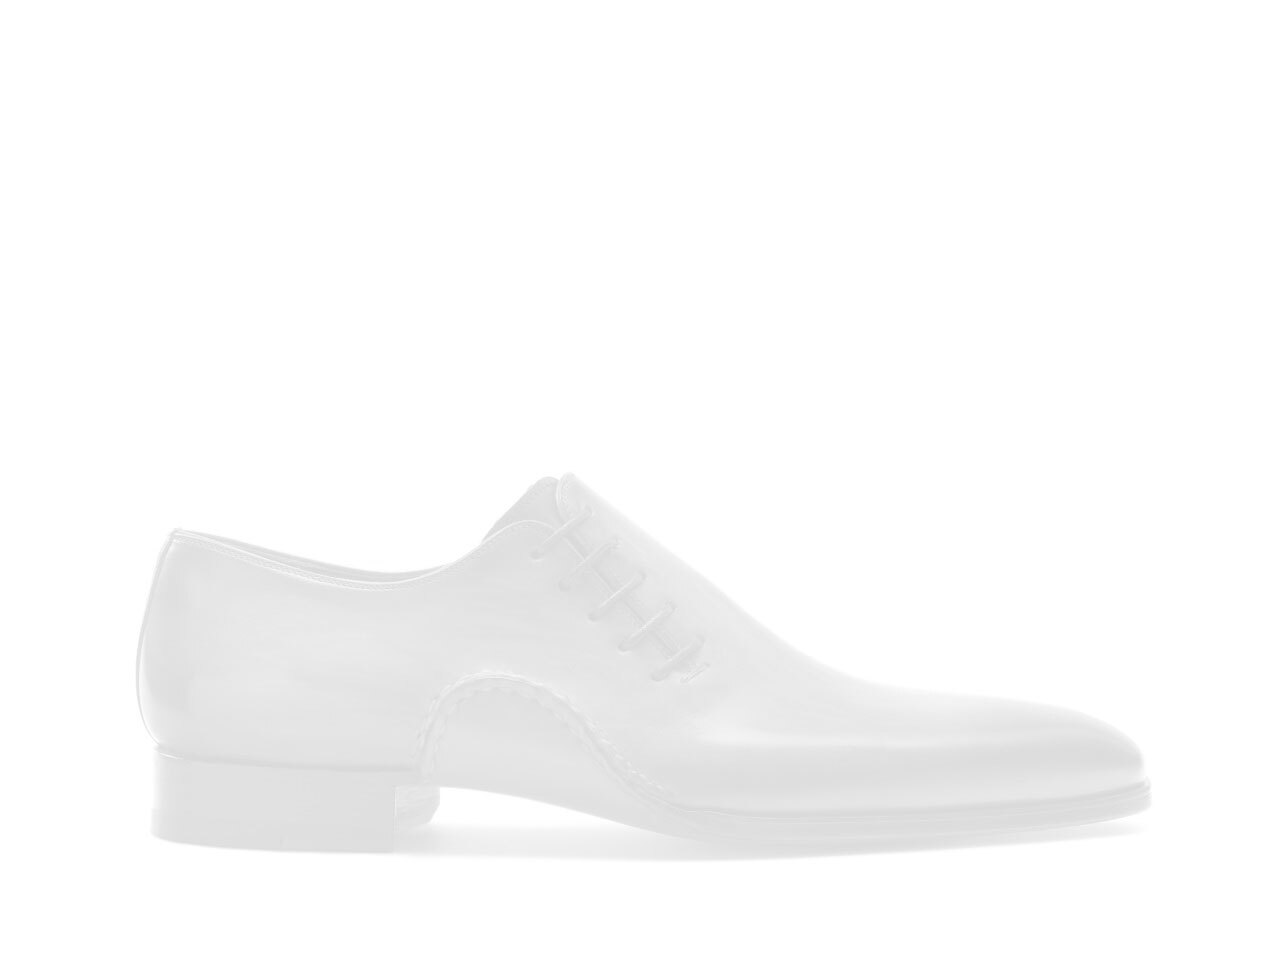 Side view of the Magnanni Spero Grey Men's Sneakers